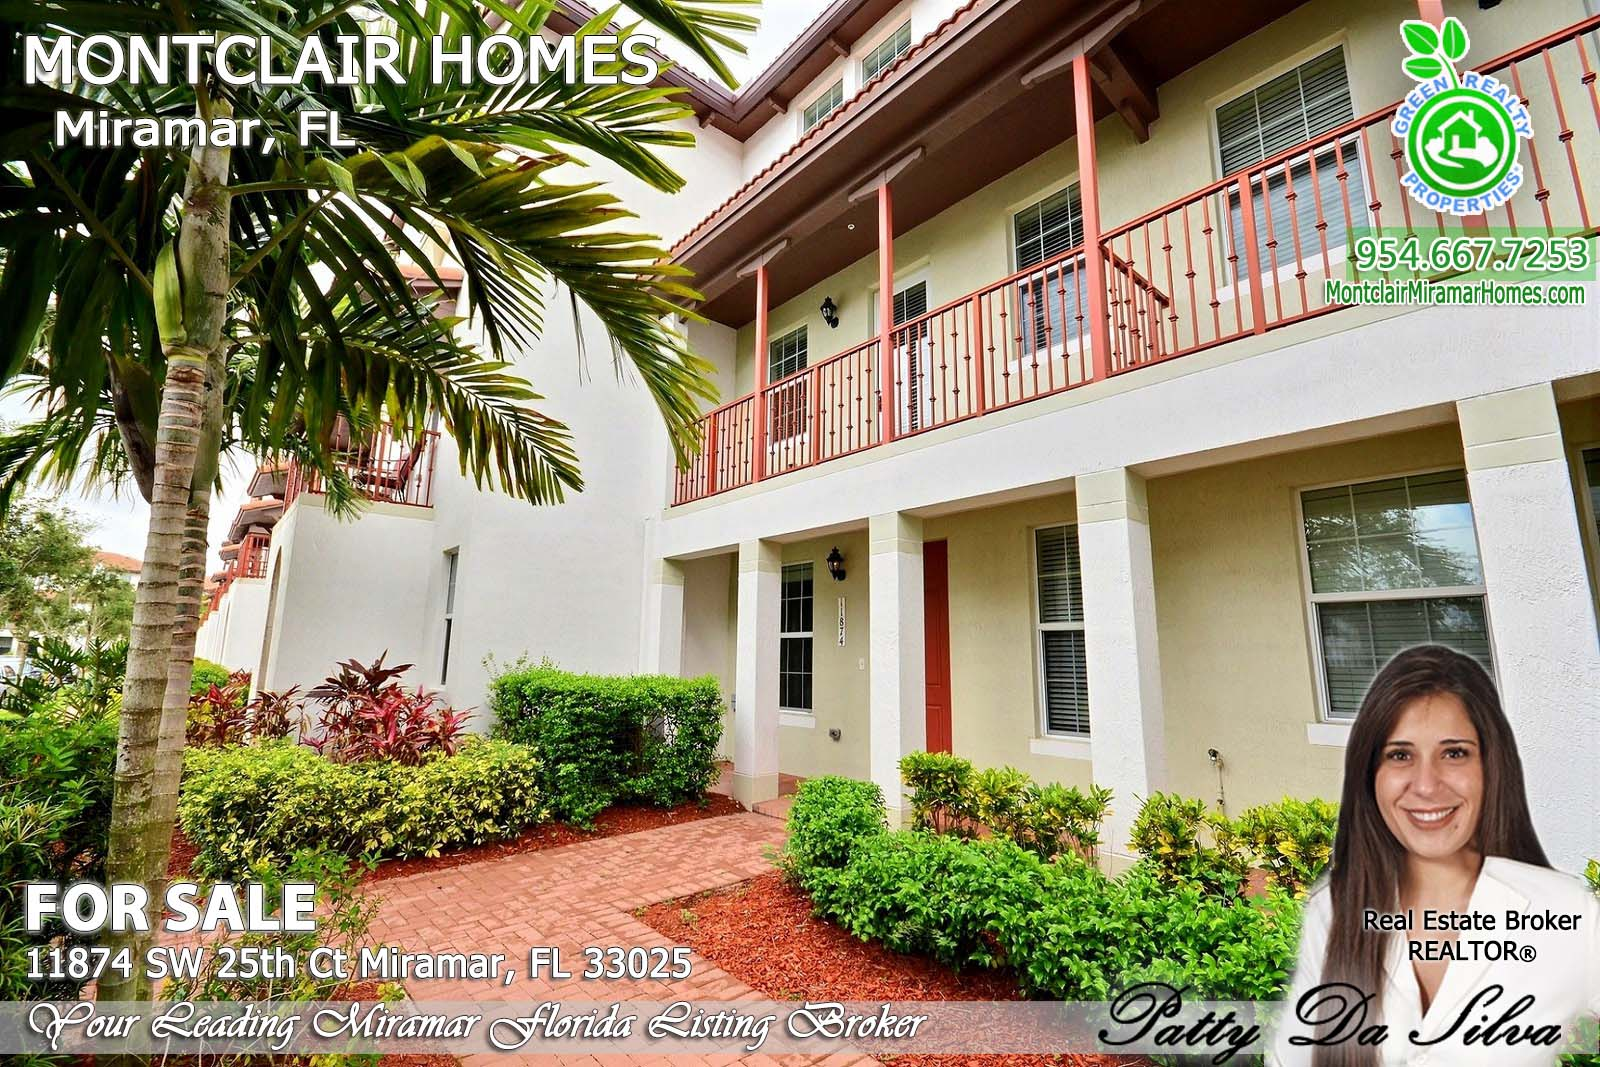 11874 SW 25 CT, Miramar FL 33025 - Montclair (23)